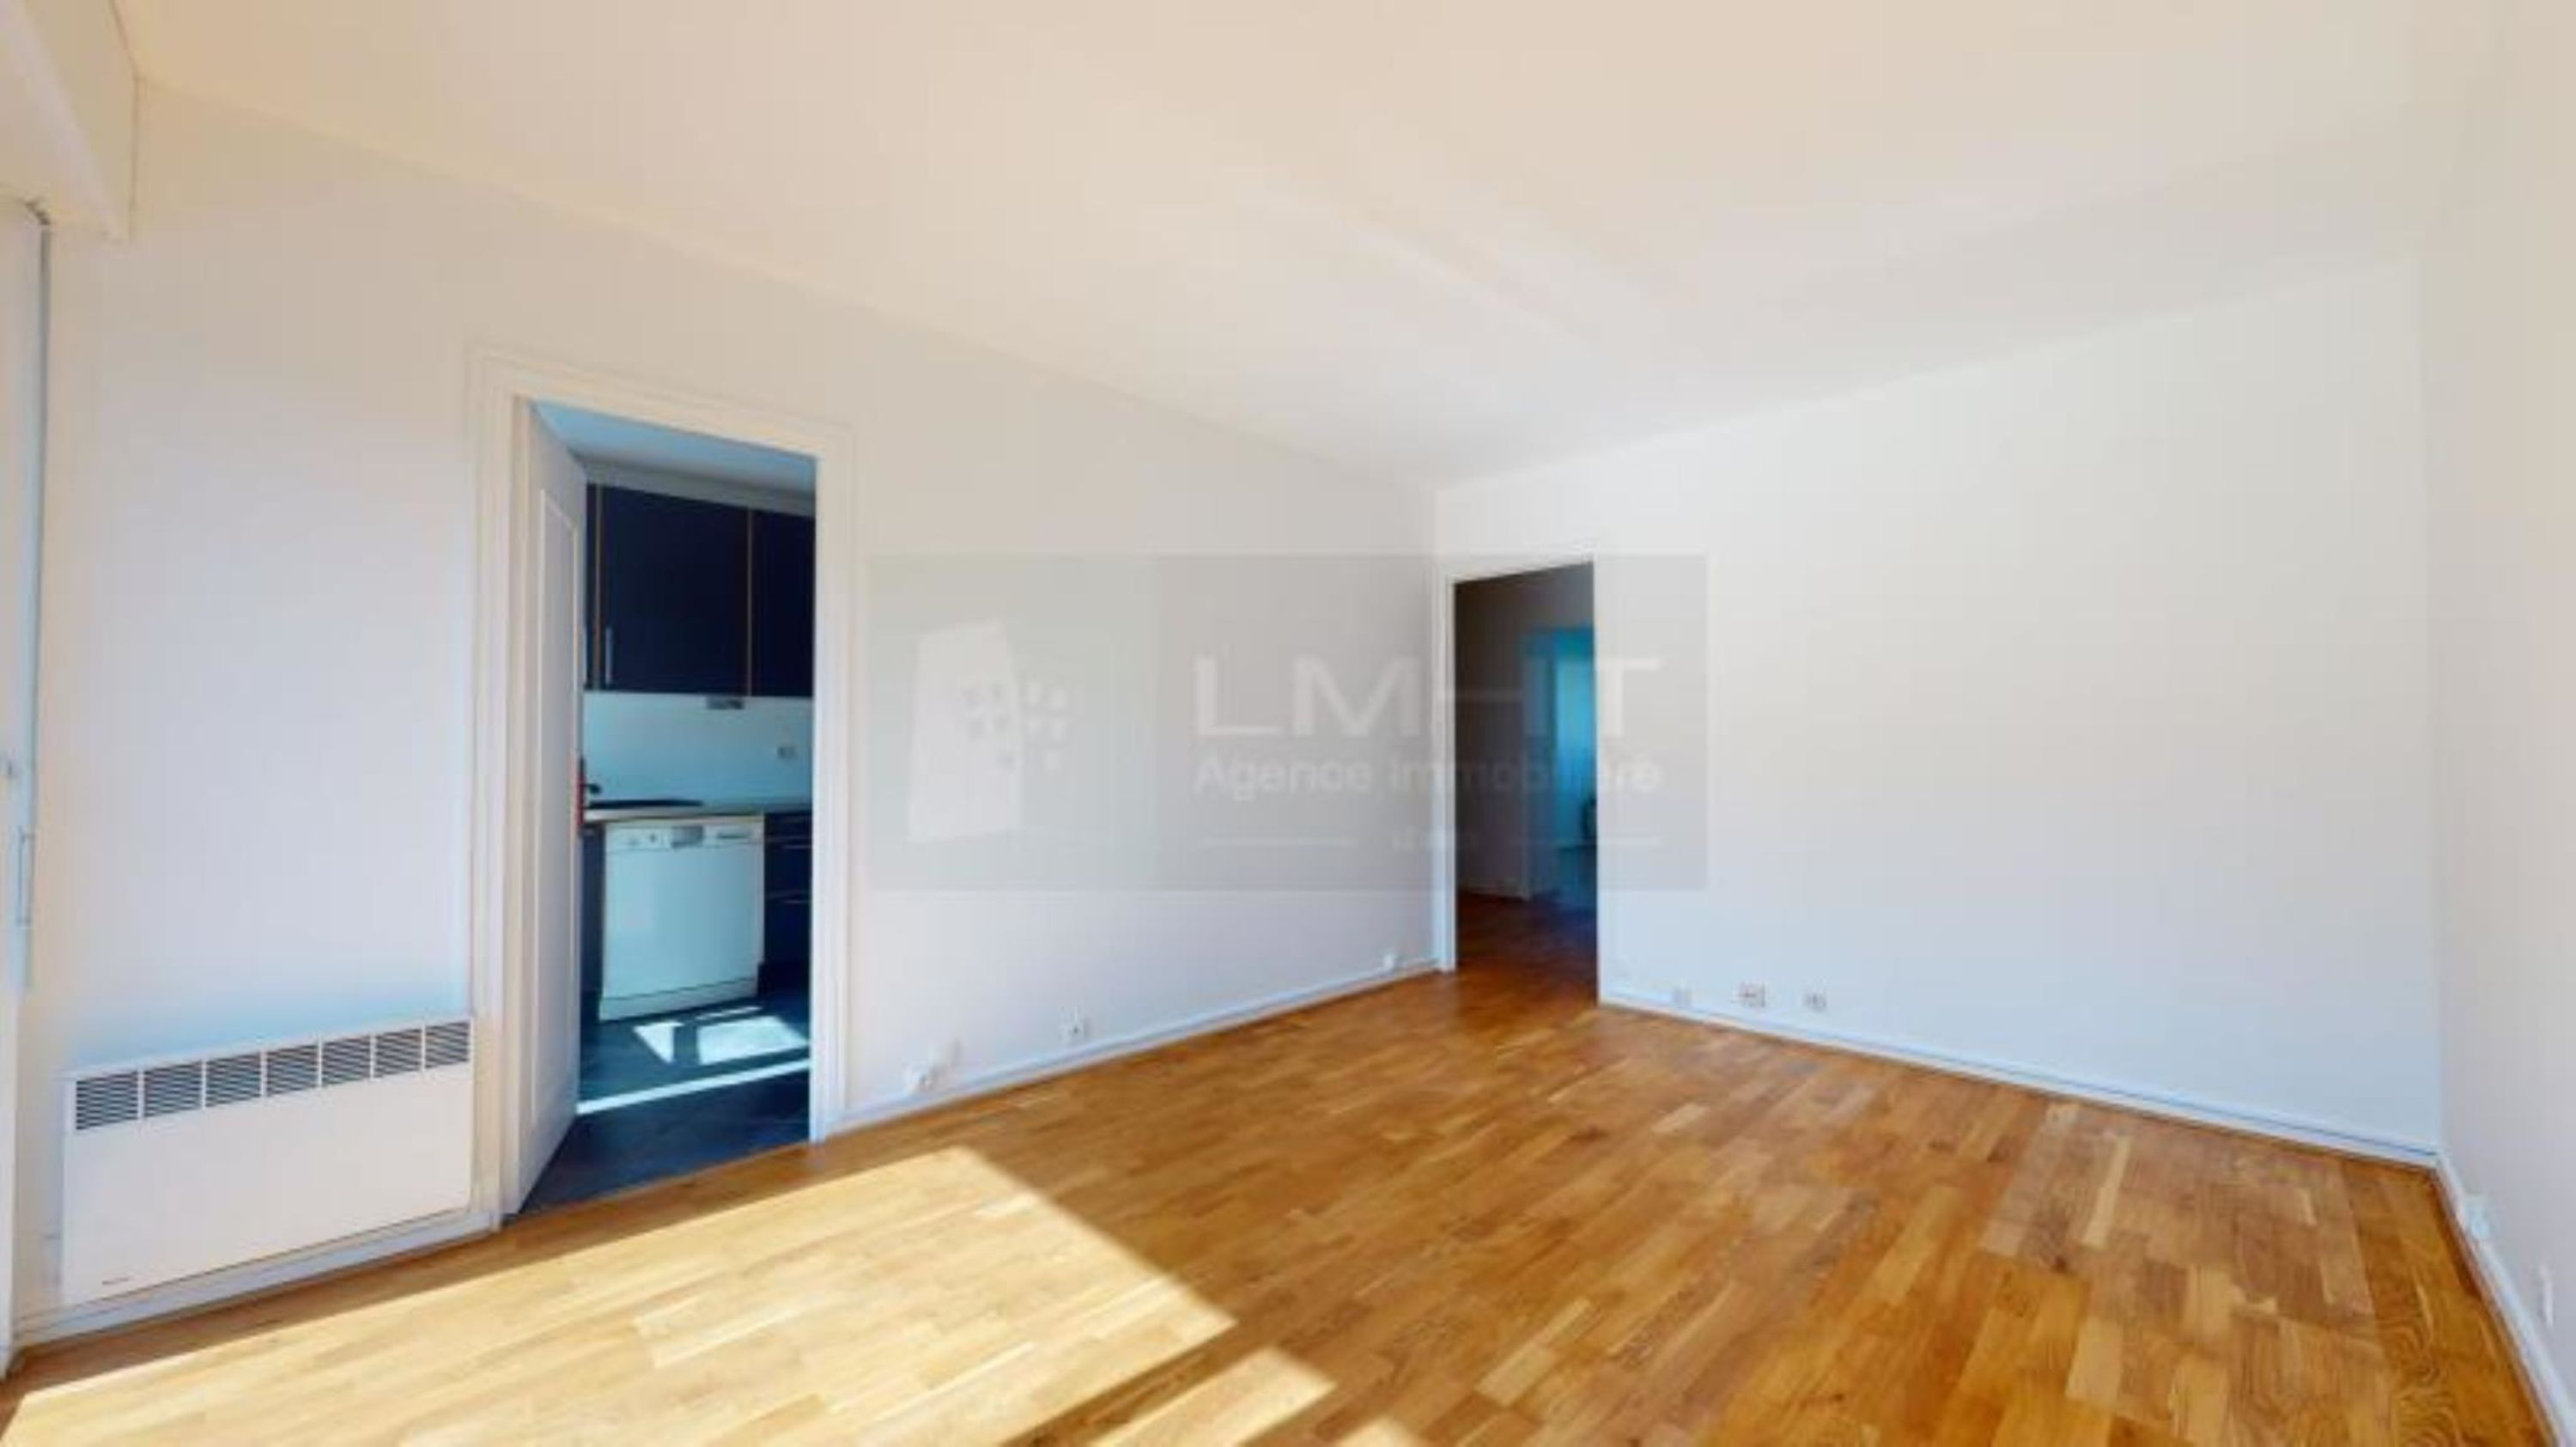 agence immobilière sevres 92 le chesnay 78 achat vente location appartement maison immobilier LMHT ANF RRJCCUNA